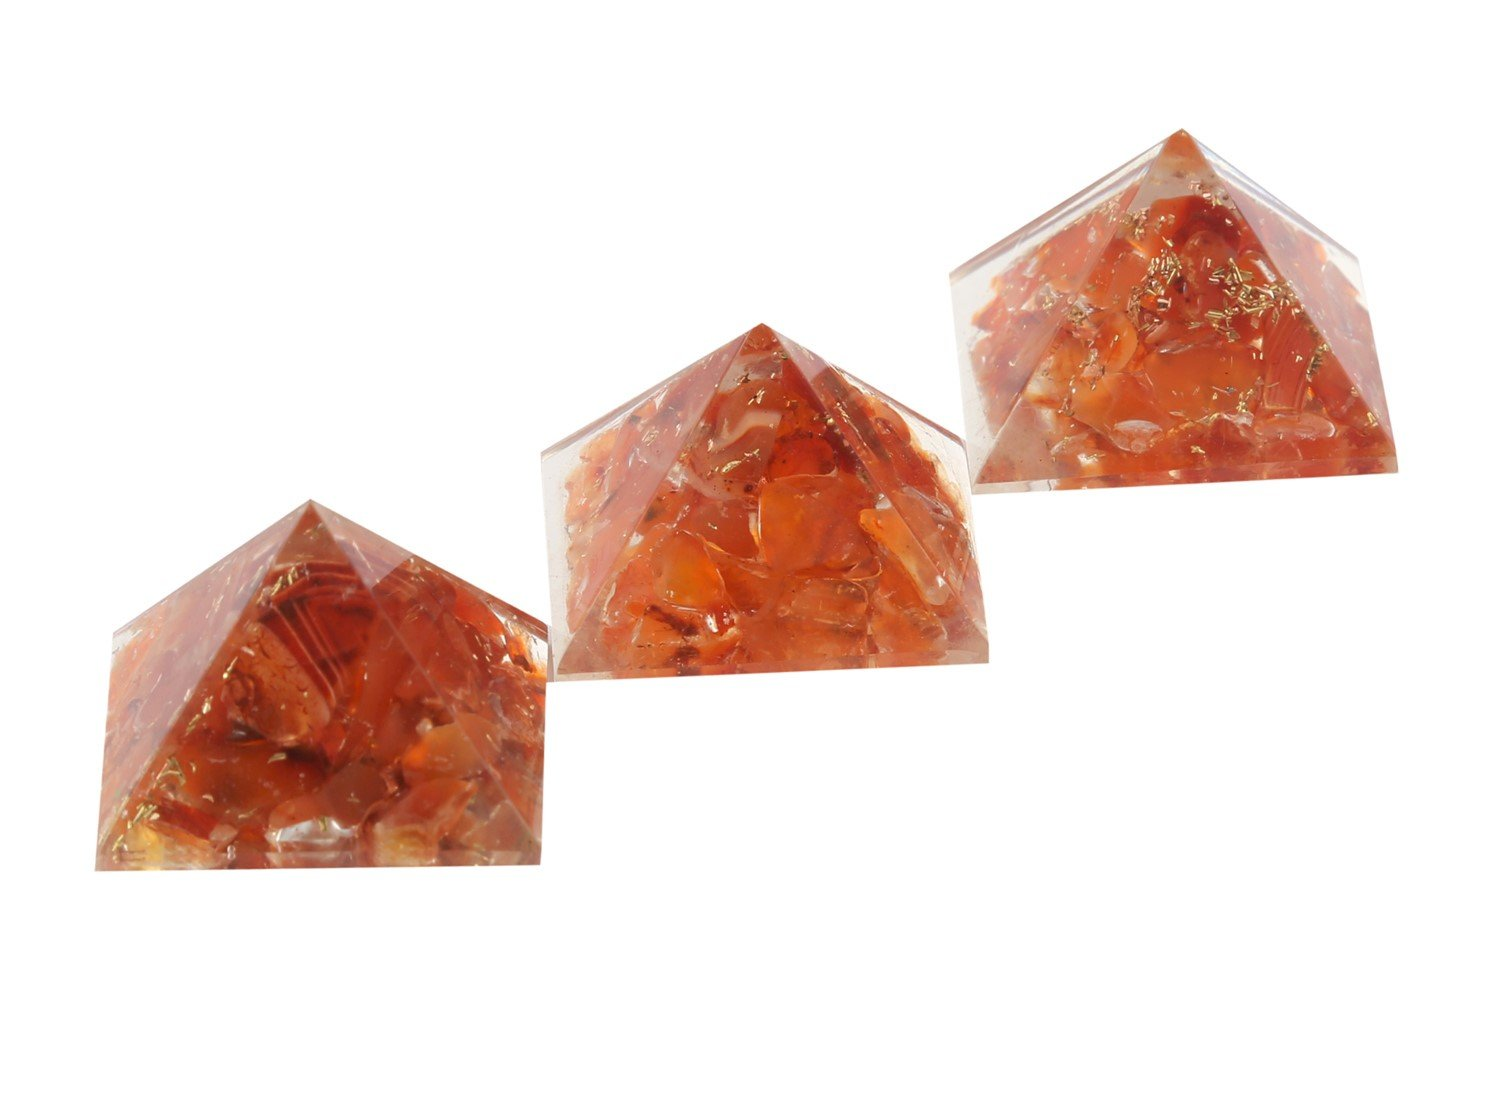 Aatm Reiki Energized chakra healing Carnelian Orgone Pyramid (1inch) With Clear Crystal Gemstone/ EMF Protection Meditation Yoga Energy Generator (Set of 3) Aatm Collection GAPC-275